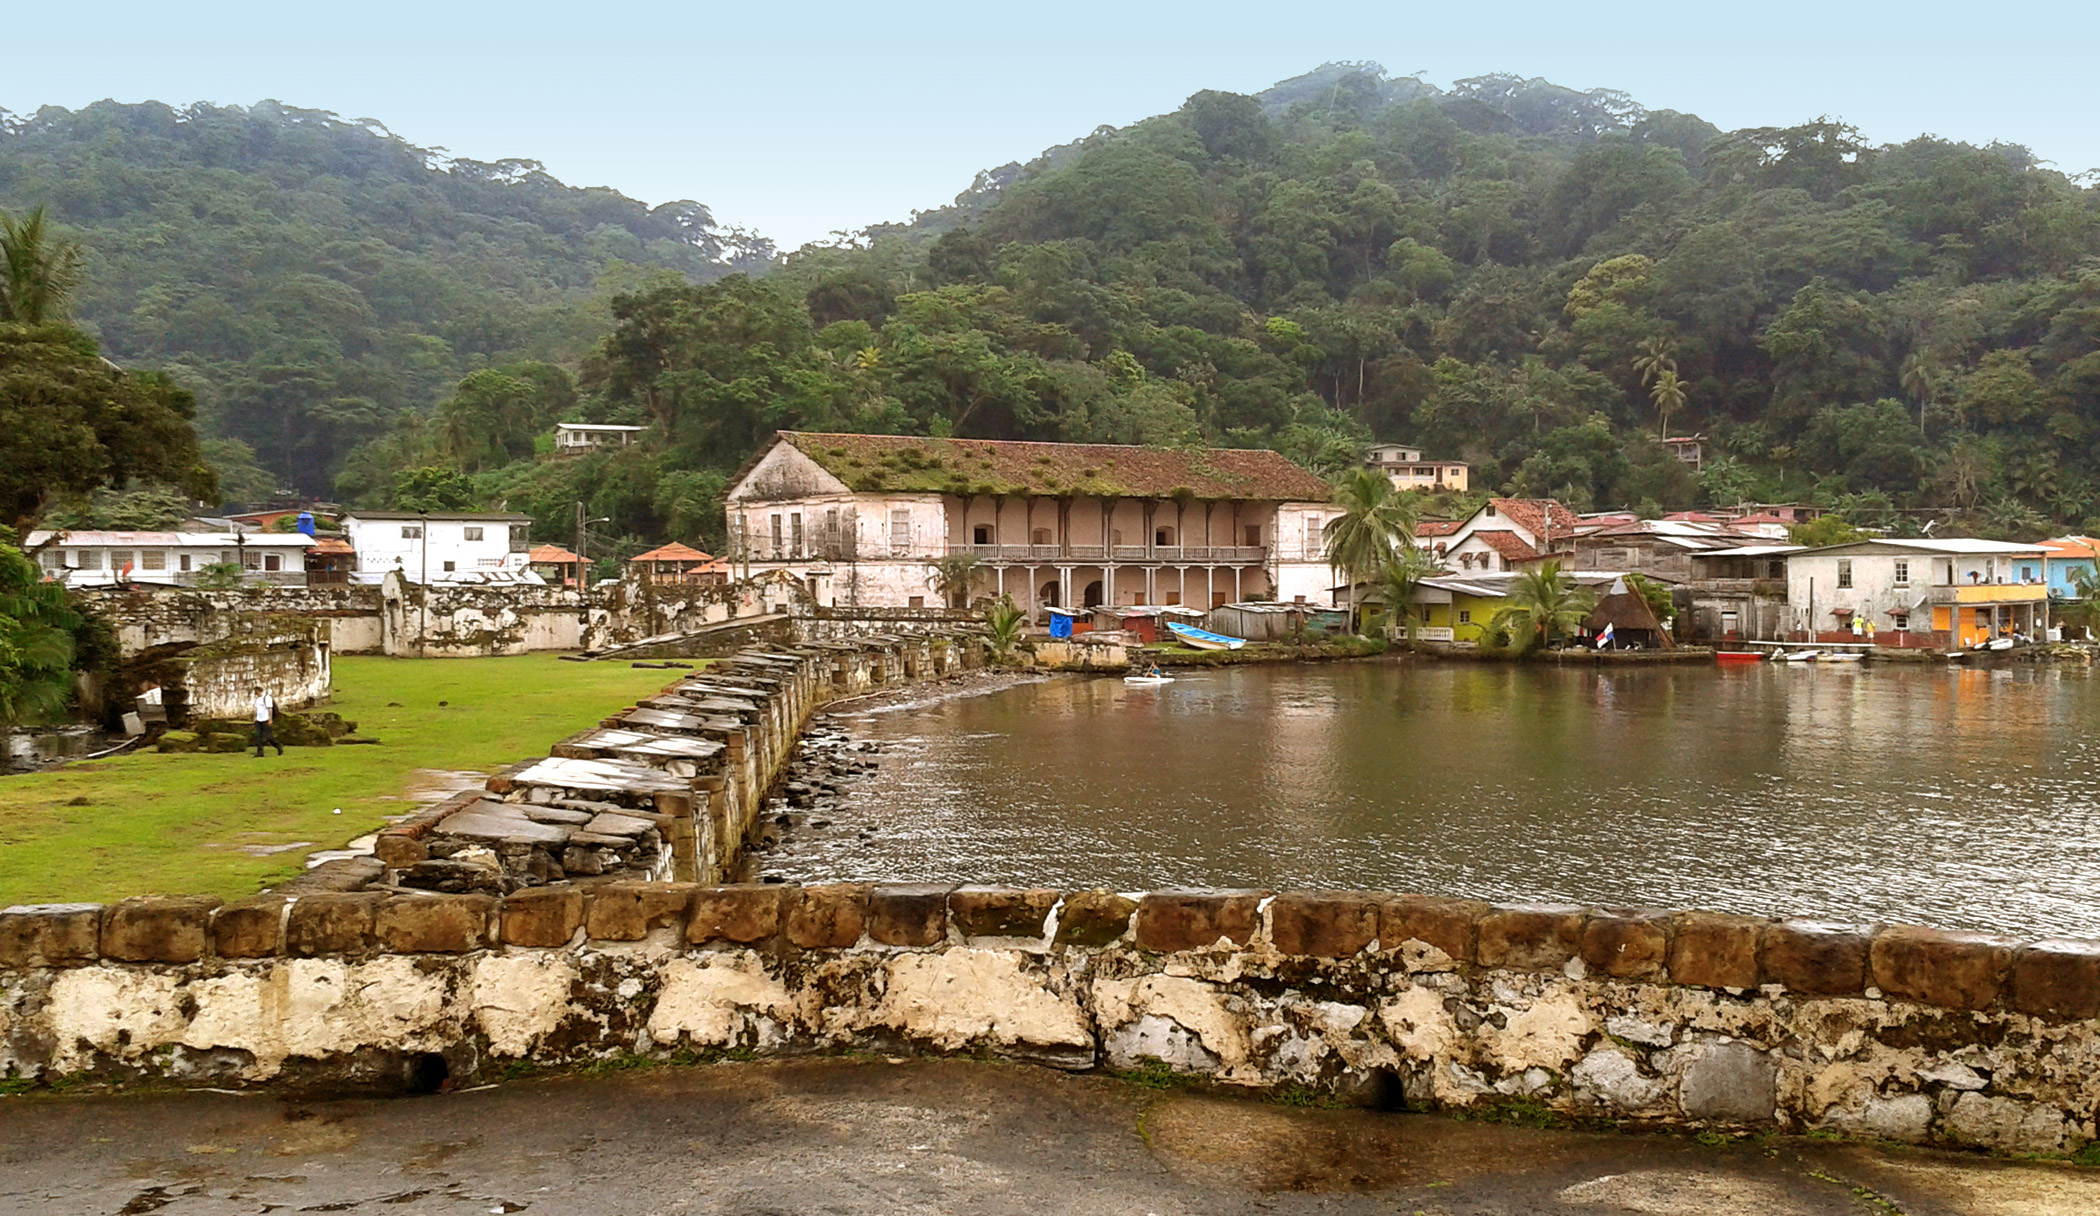 Panama, Fortifications                               of Portobelo: The Fortifications of Portobelo need better management to reverse the effects of prolonged lack of maintenance and to mitigate the challenges of urban encroachment and an adverse environment.